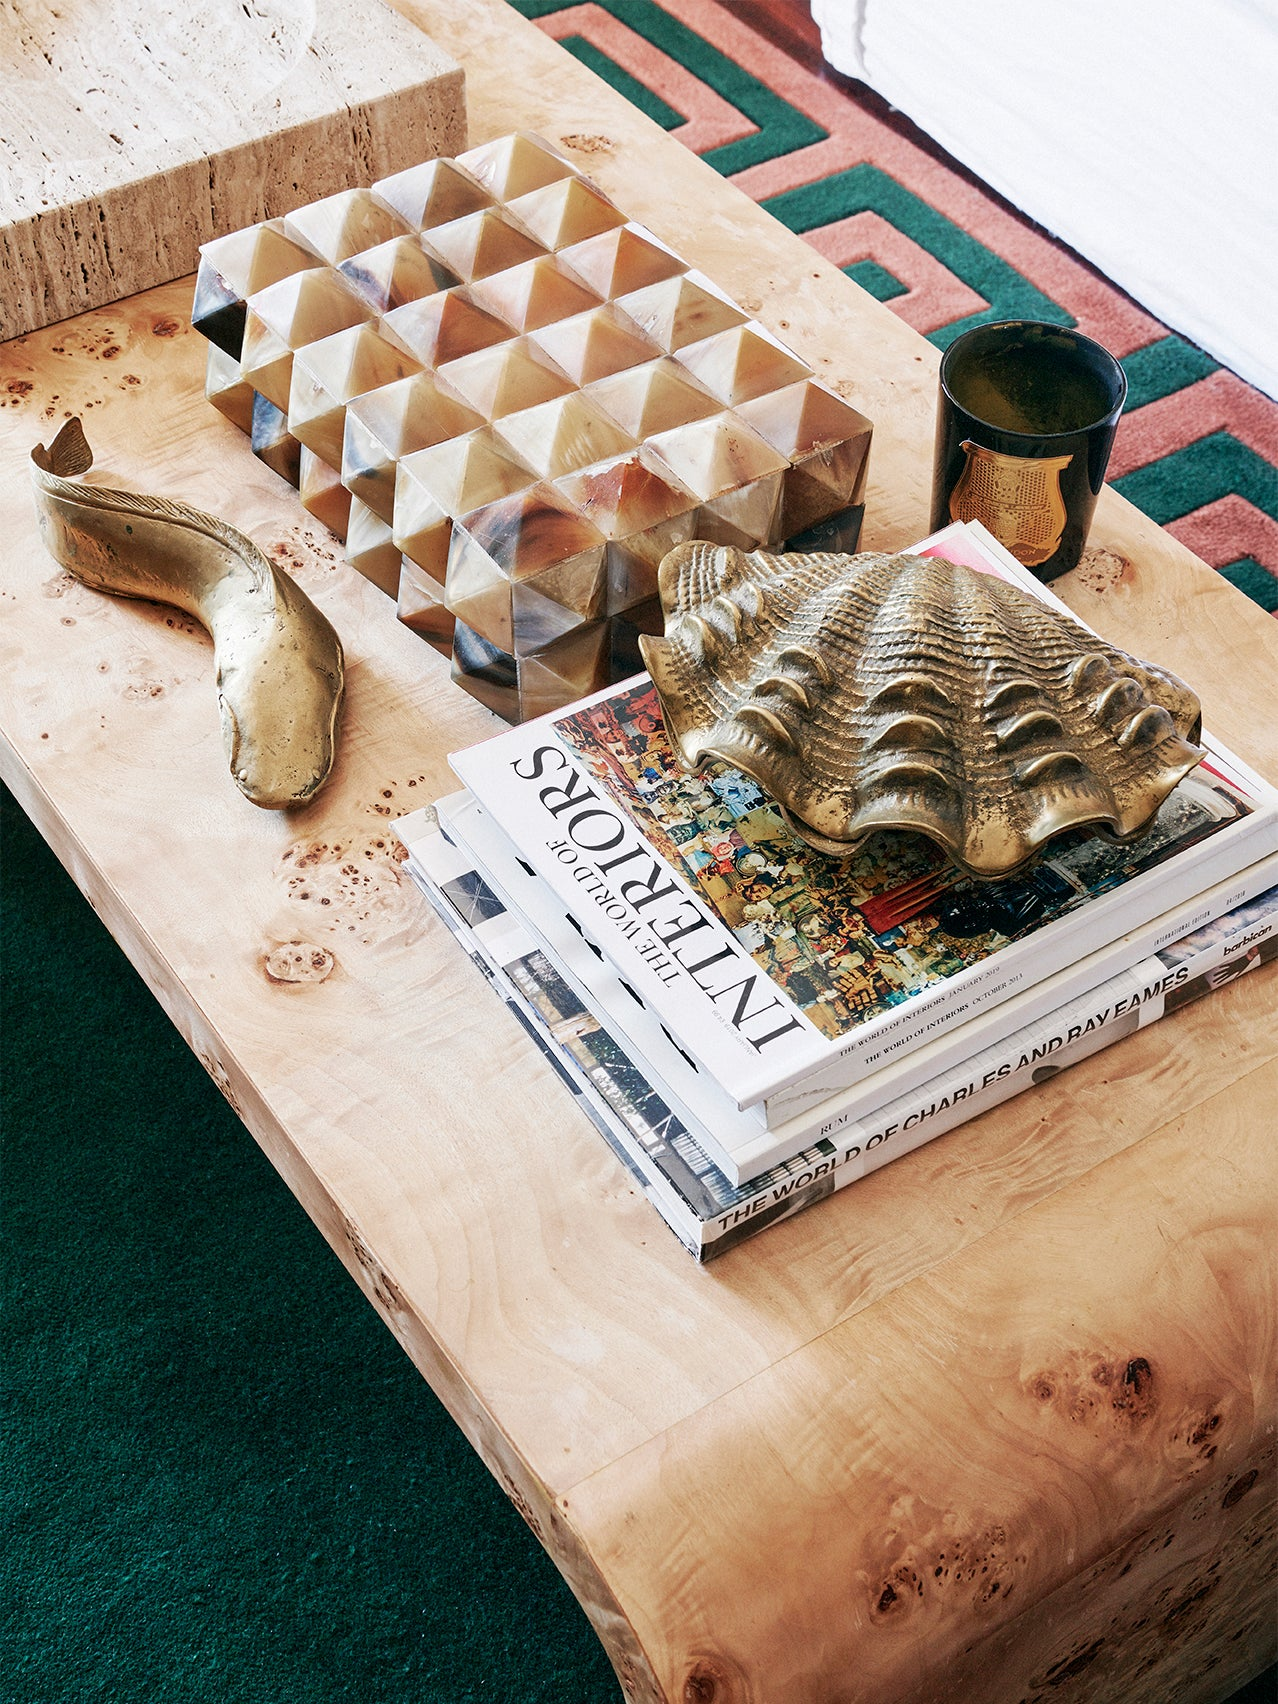 Wooden coffee table with knick-knacks.